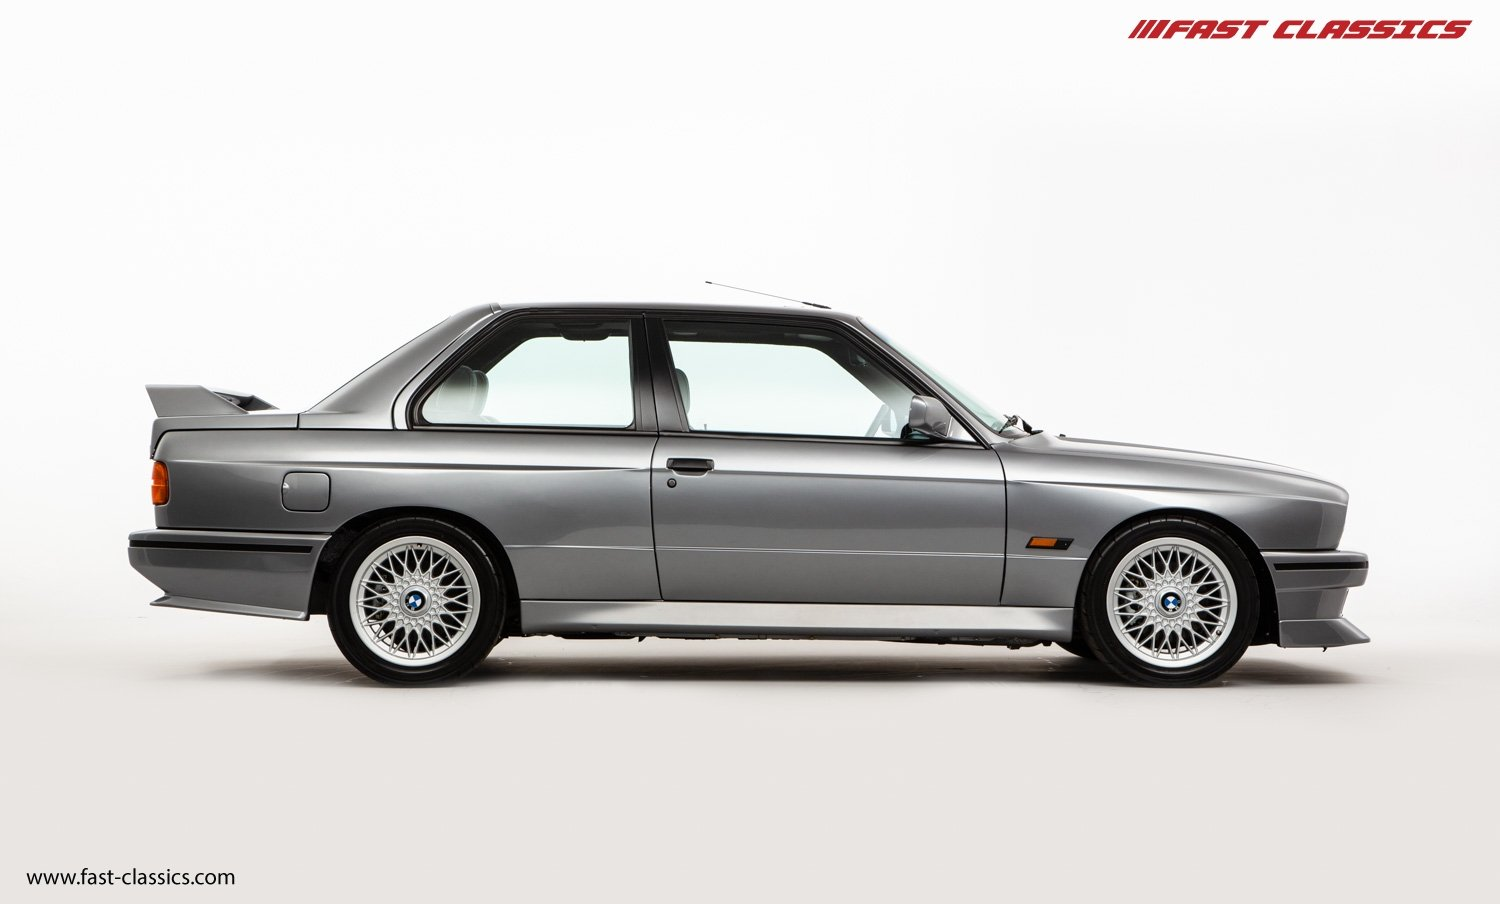 1988 Bmw M3 Bmw E30 M3 Evo 2 German Supplied Nut Bolt Restoration Classic Driver Market